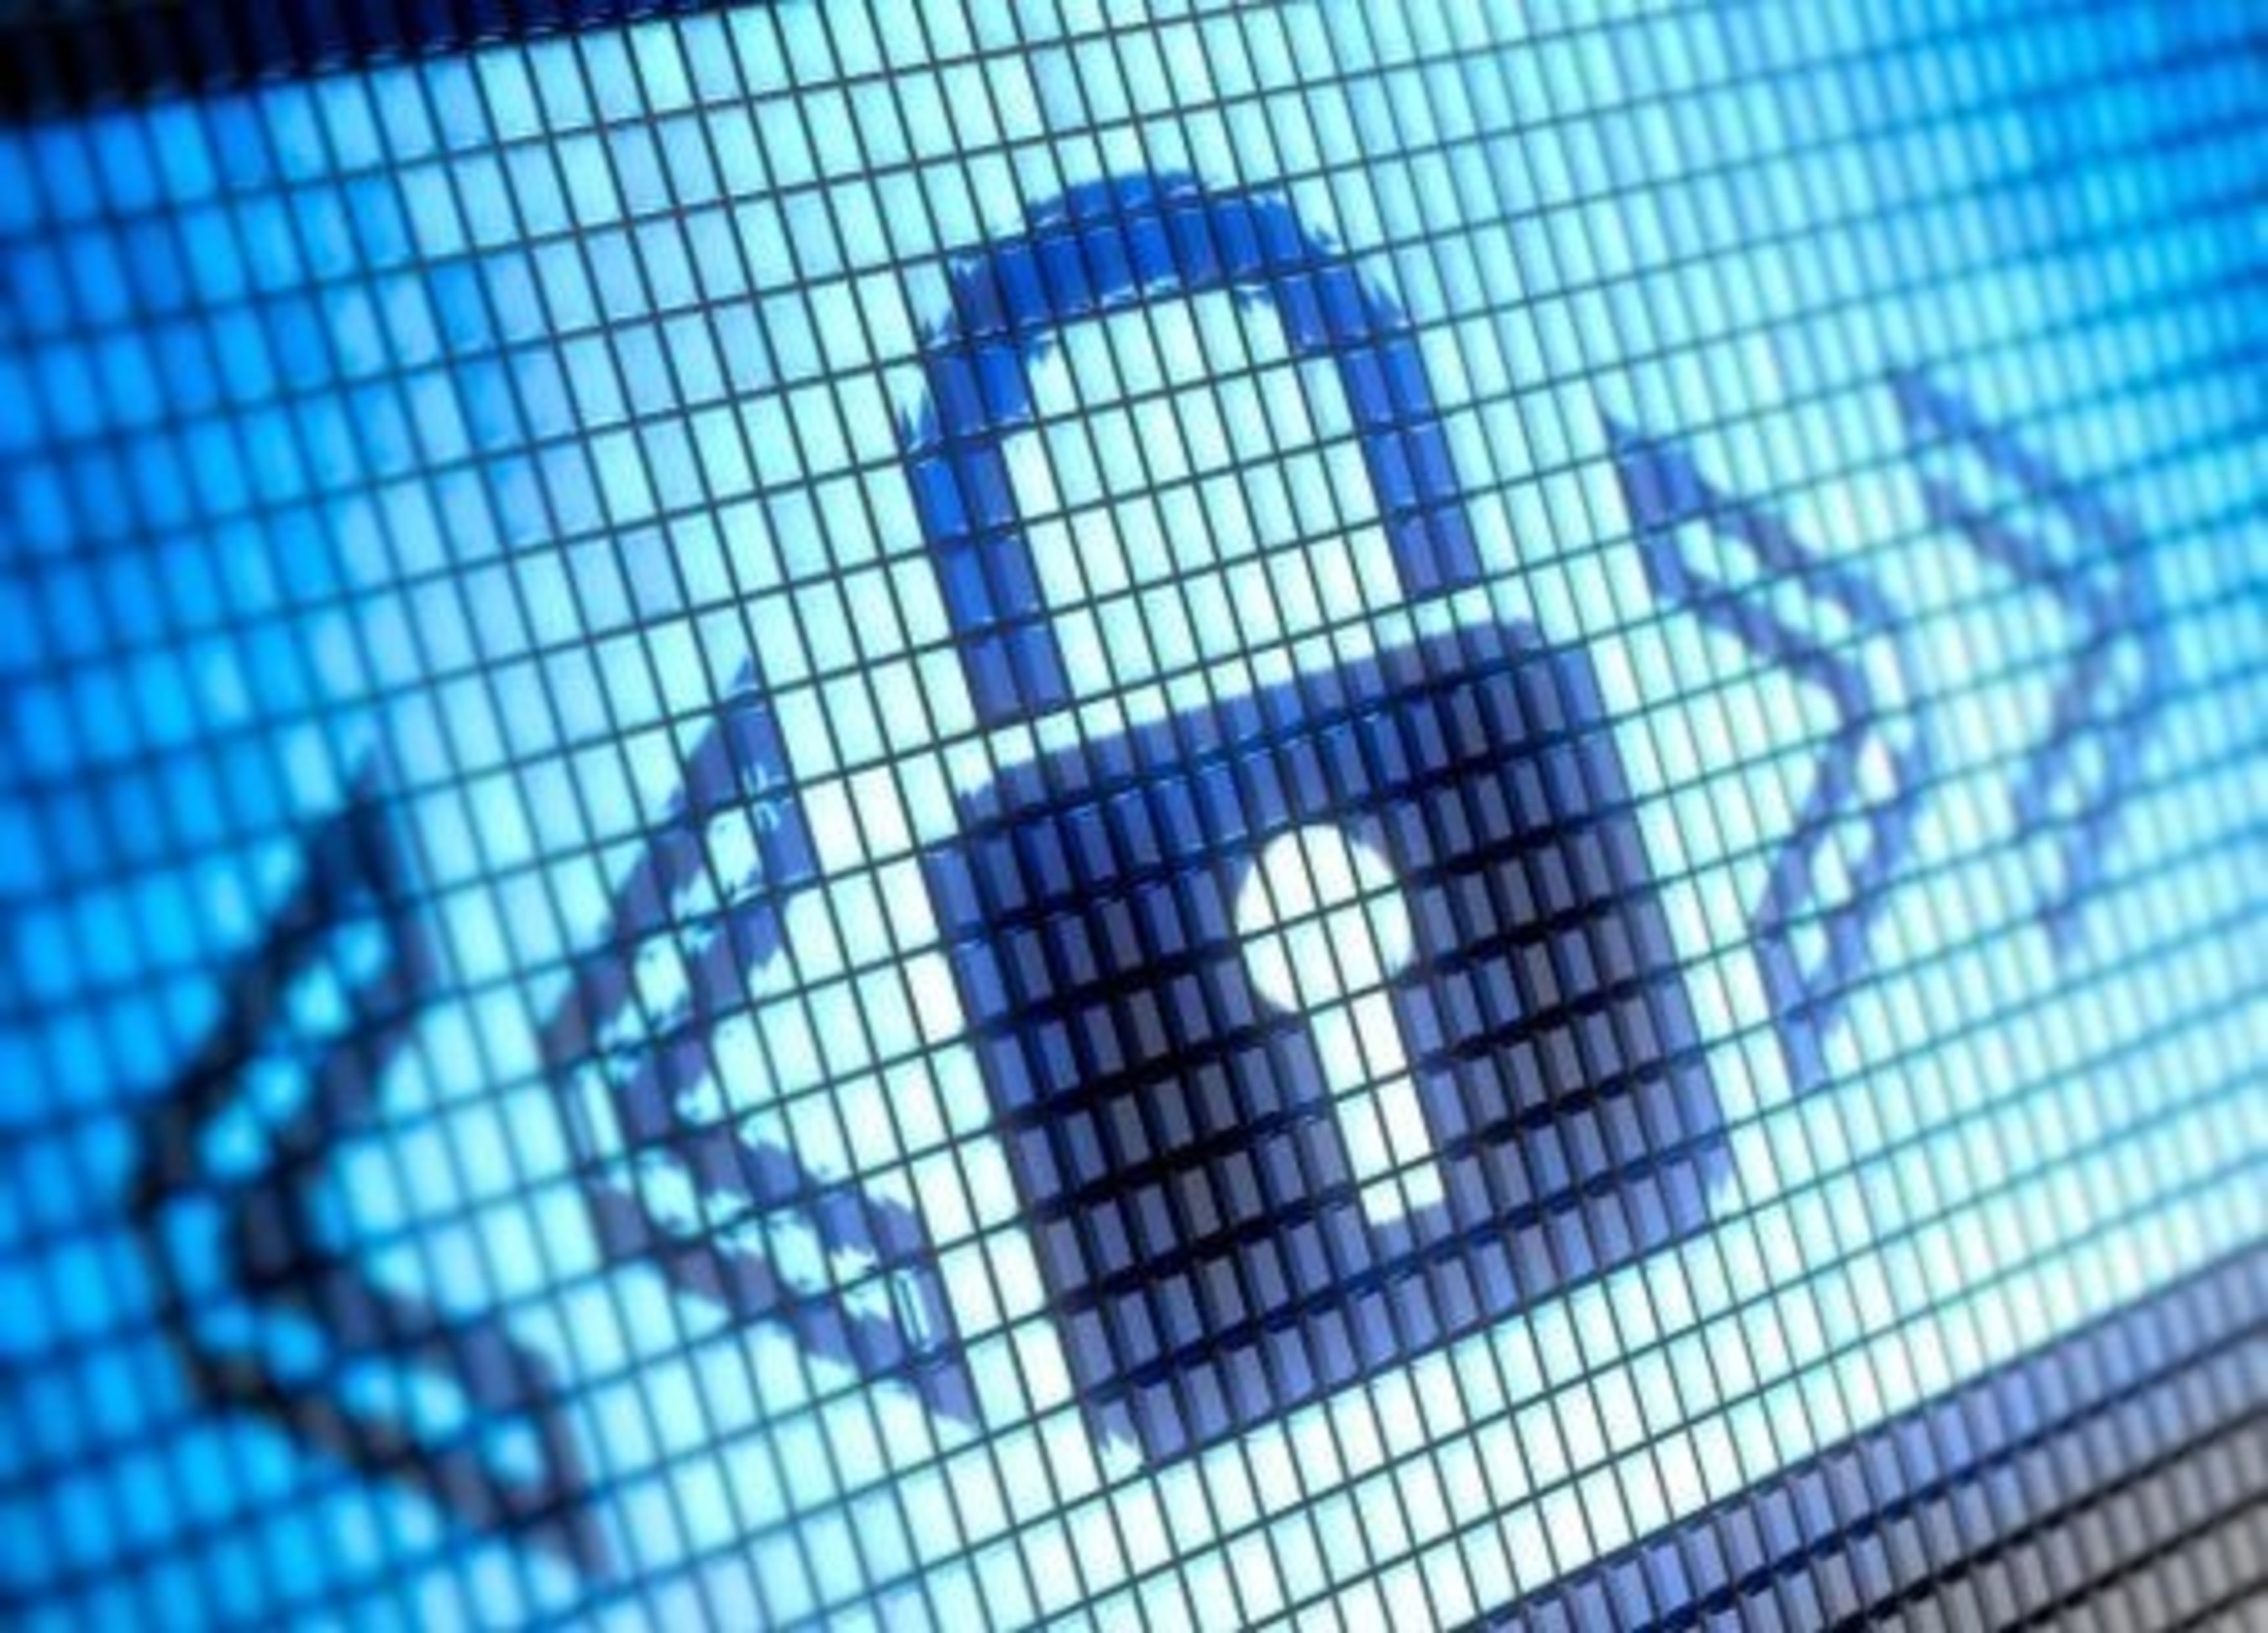 Threat Detection and Remediation to Emerge as a Key Market Engine for Managed Security Services